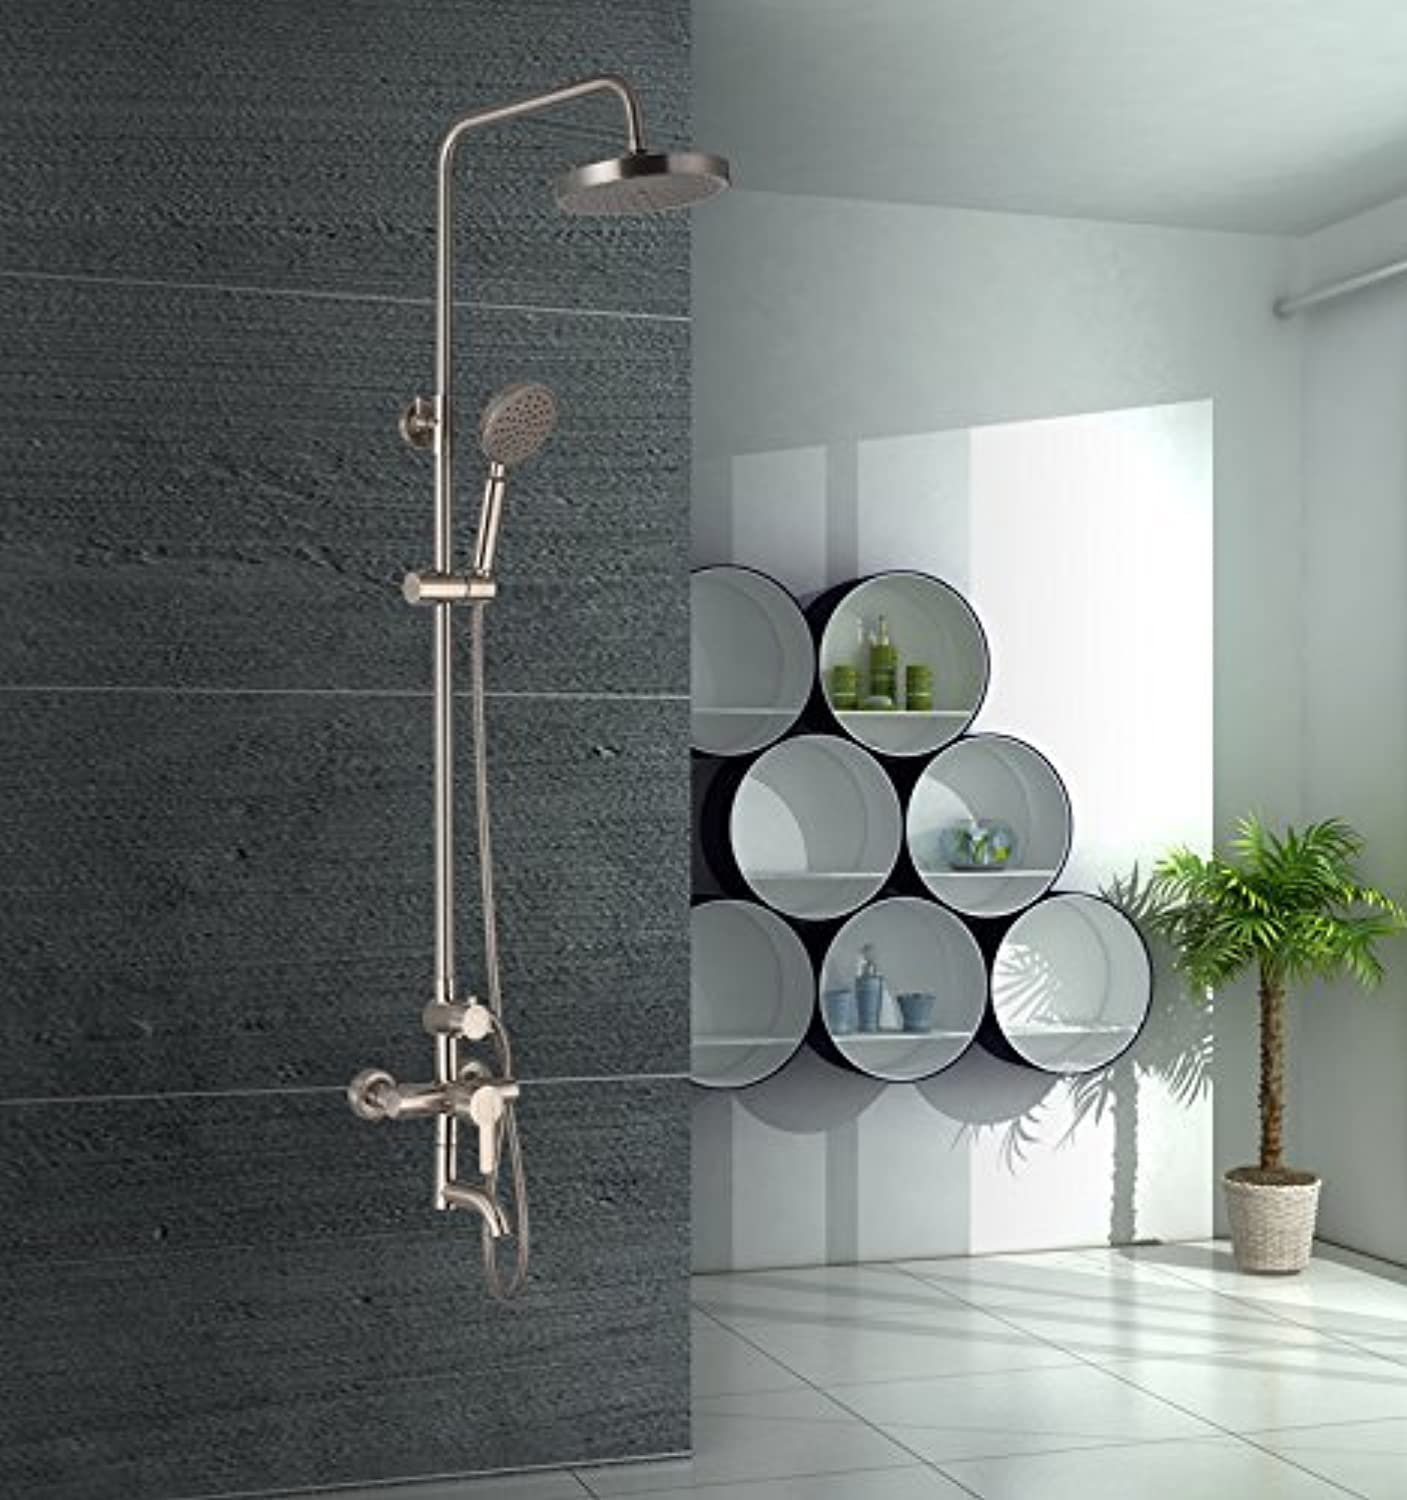 The Copper Shower Shower Column Shower Thermostat Fully Stop